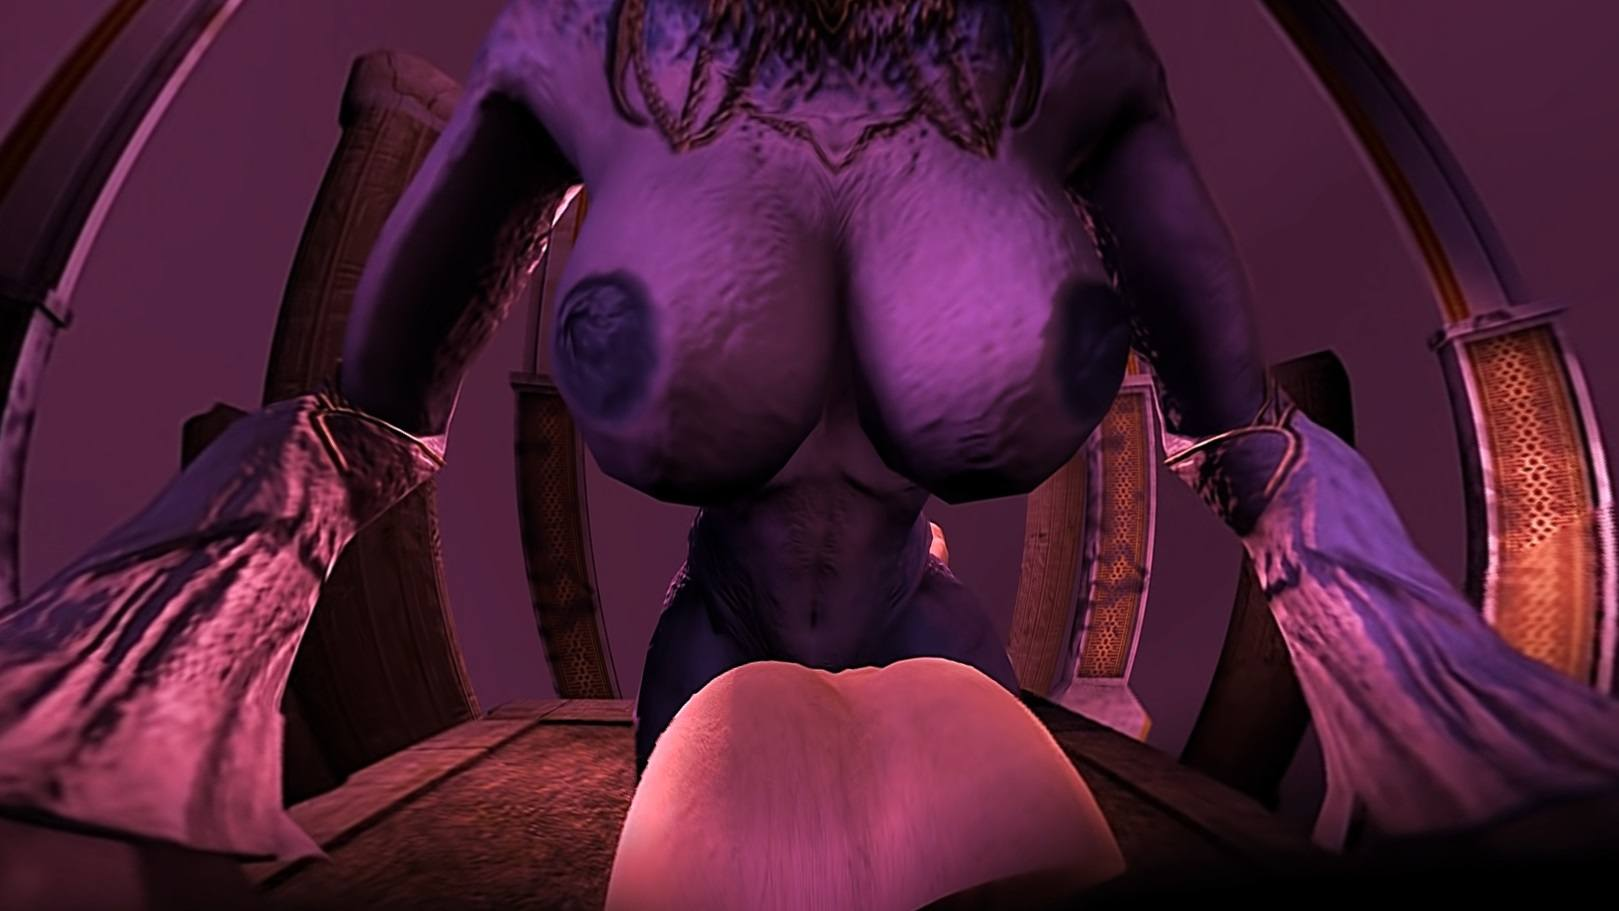 demon porn video